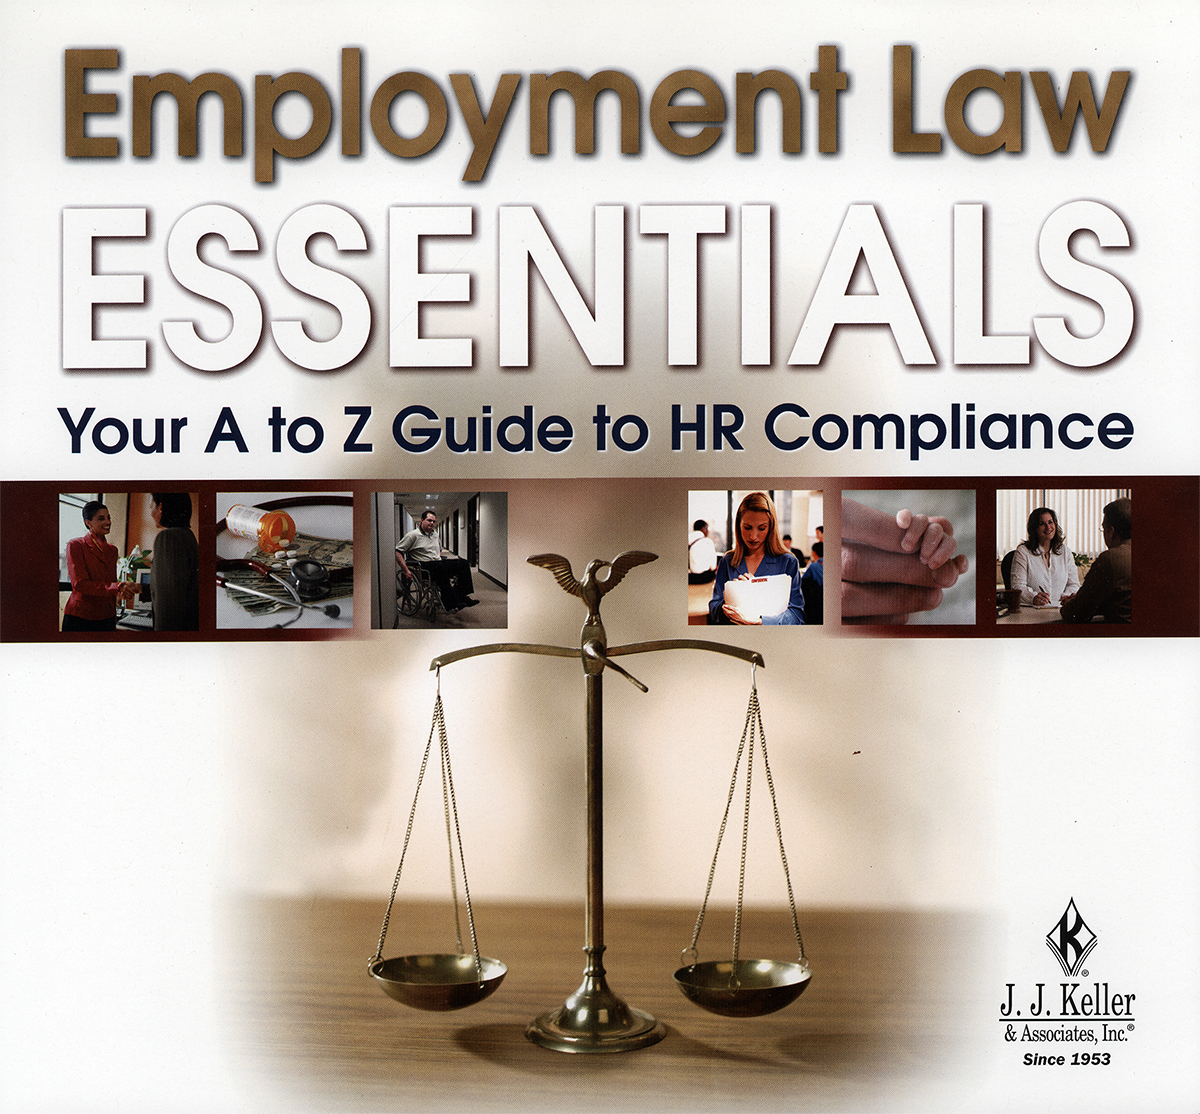 Employment law essentials : your A to Z guide to HR compliance